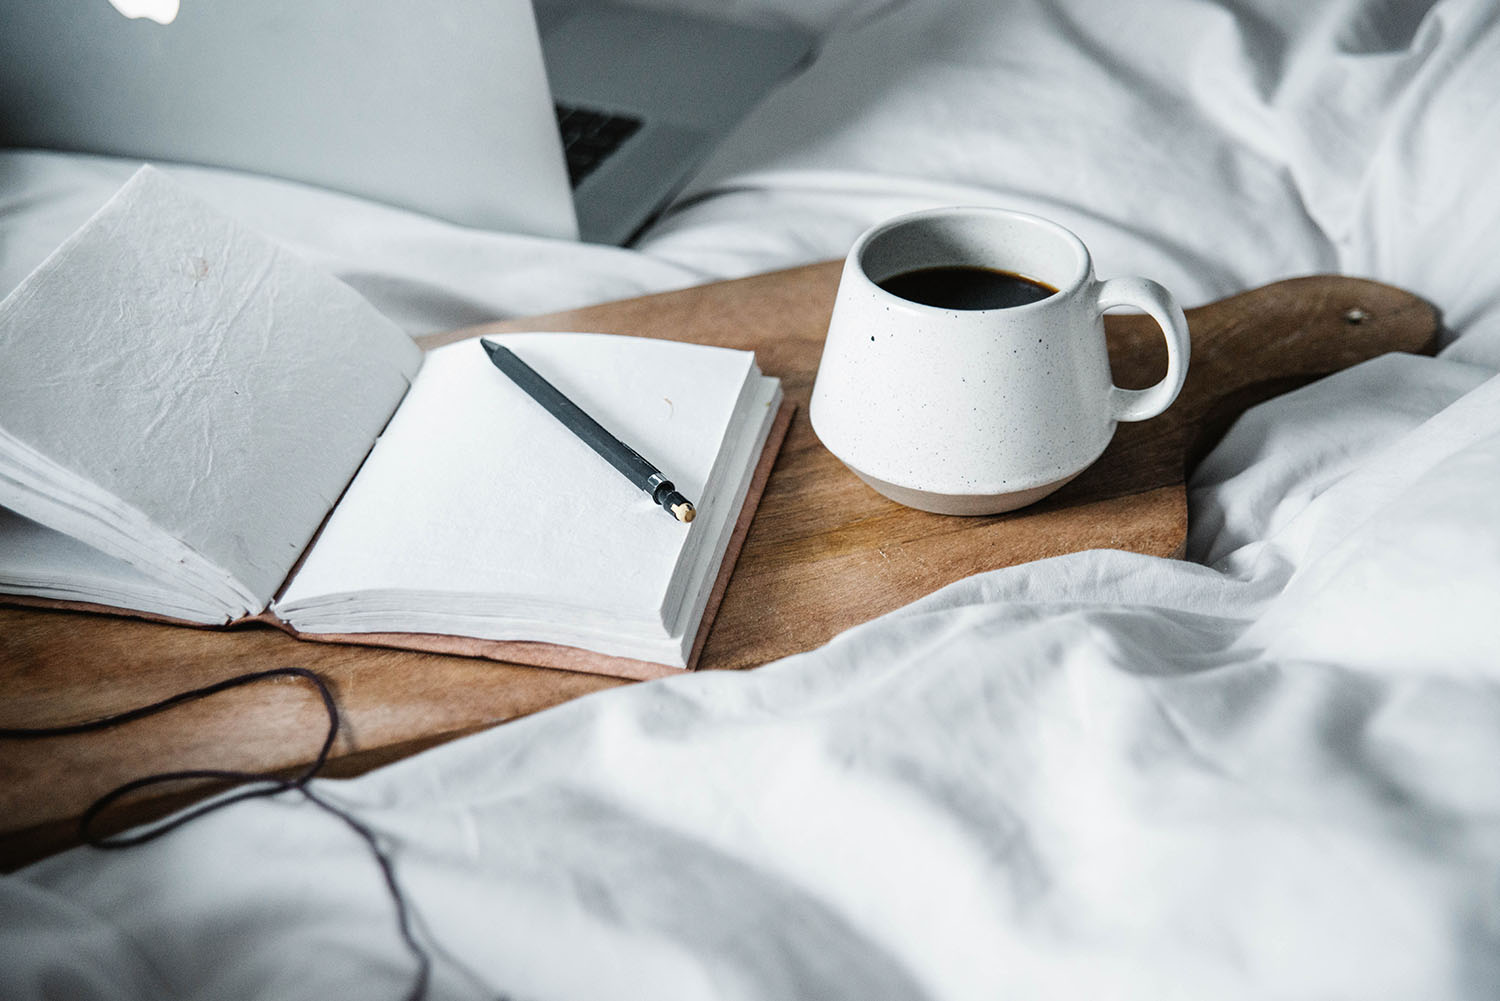 Cutting board, coffee cup, notes and Macbook in a bed with grey sheets